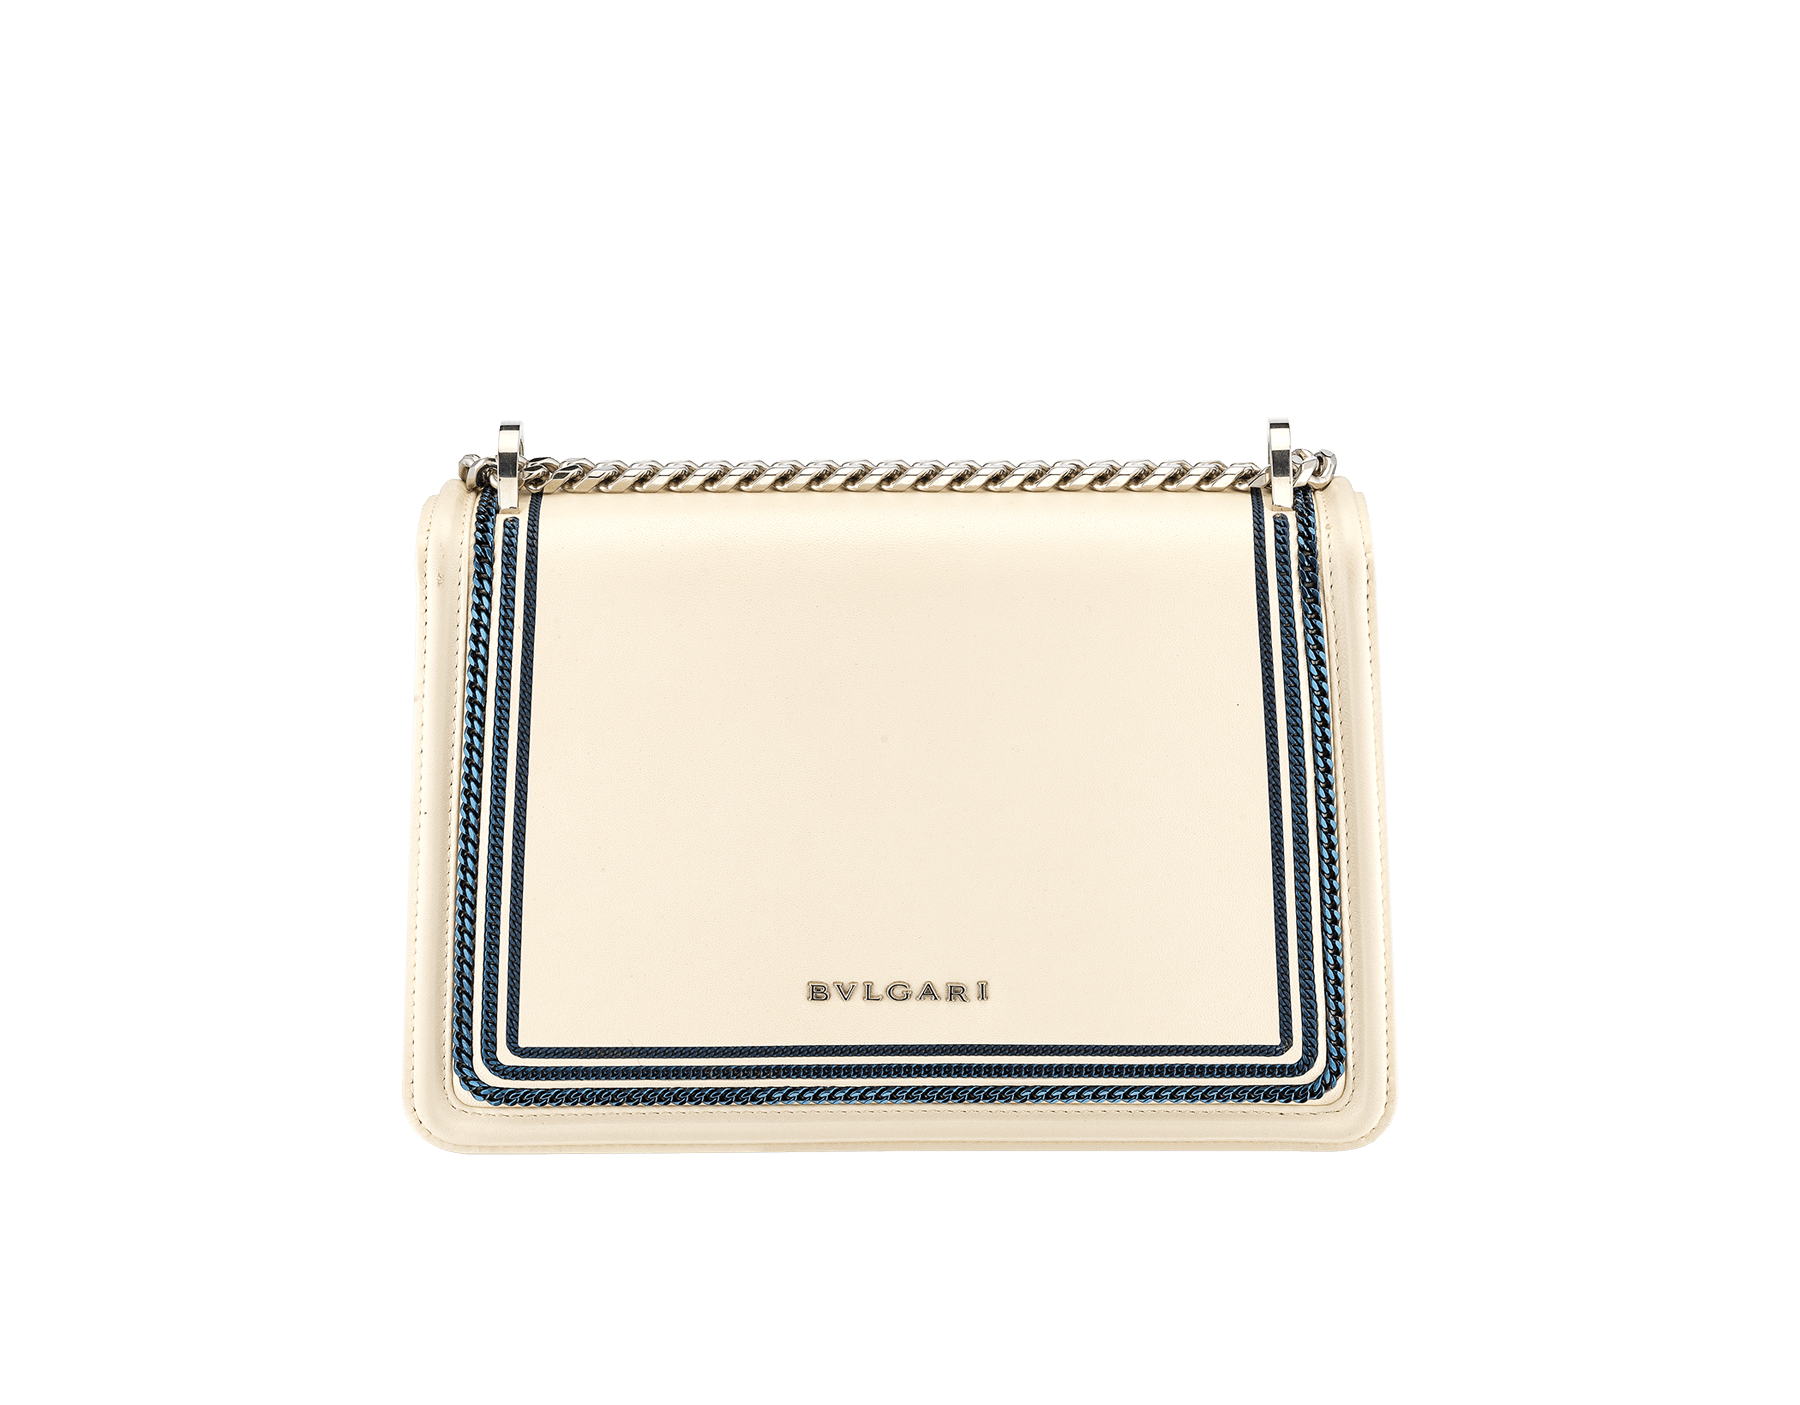 """""""Serpenti Diamond Blast"""" shoulder bag in Ivory Opal white smooth calf leather, featuring a Teal Topaz green 3-Maxi Chain motif, and an Aquamarine light blue nappa leather internal lining. Tempting snakehead closure in palladium-plated brass, embellished with Teal Topaz green and Ivory Opal white enamel, and black onyx eyes. 291173 image 6"""